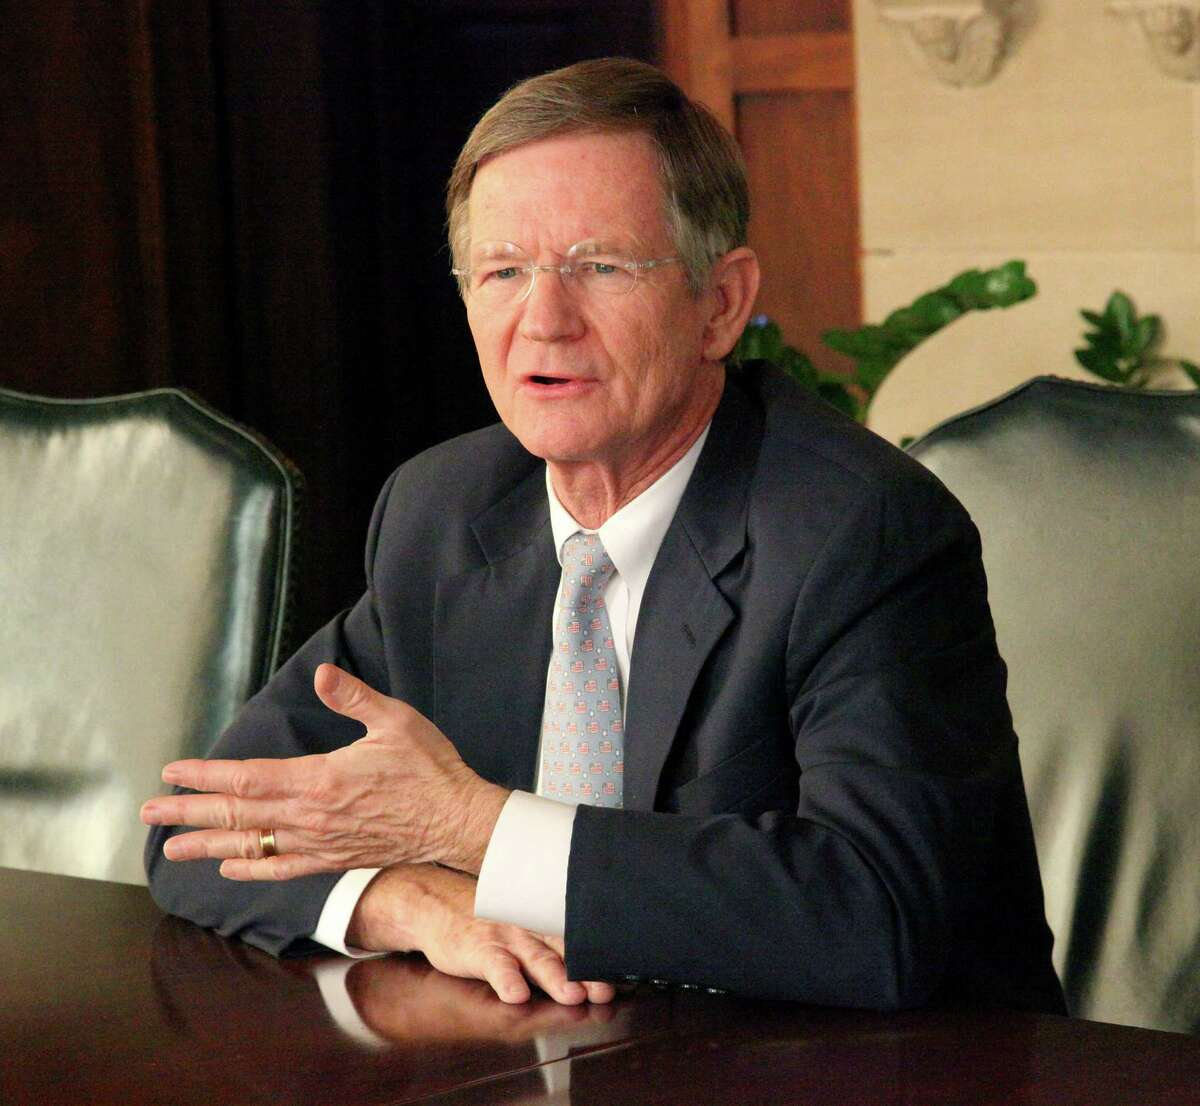 U.S. Rep. Lamar Smith is an experienced capable lawmaker. who represents the views of the conservative 21st Congressional District well.